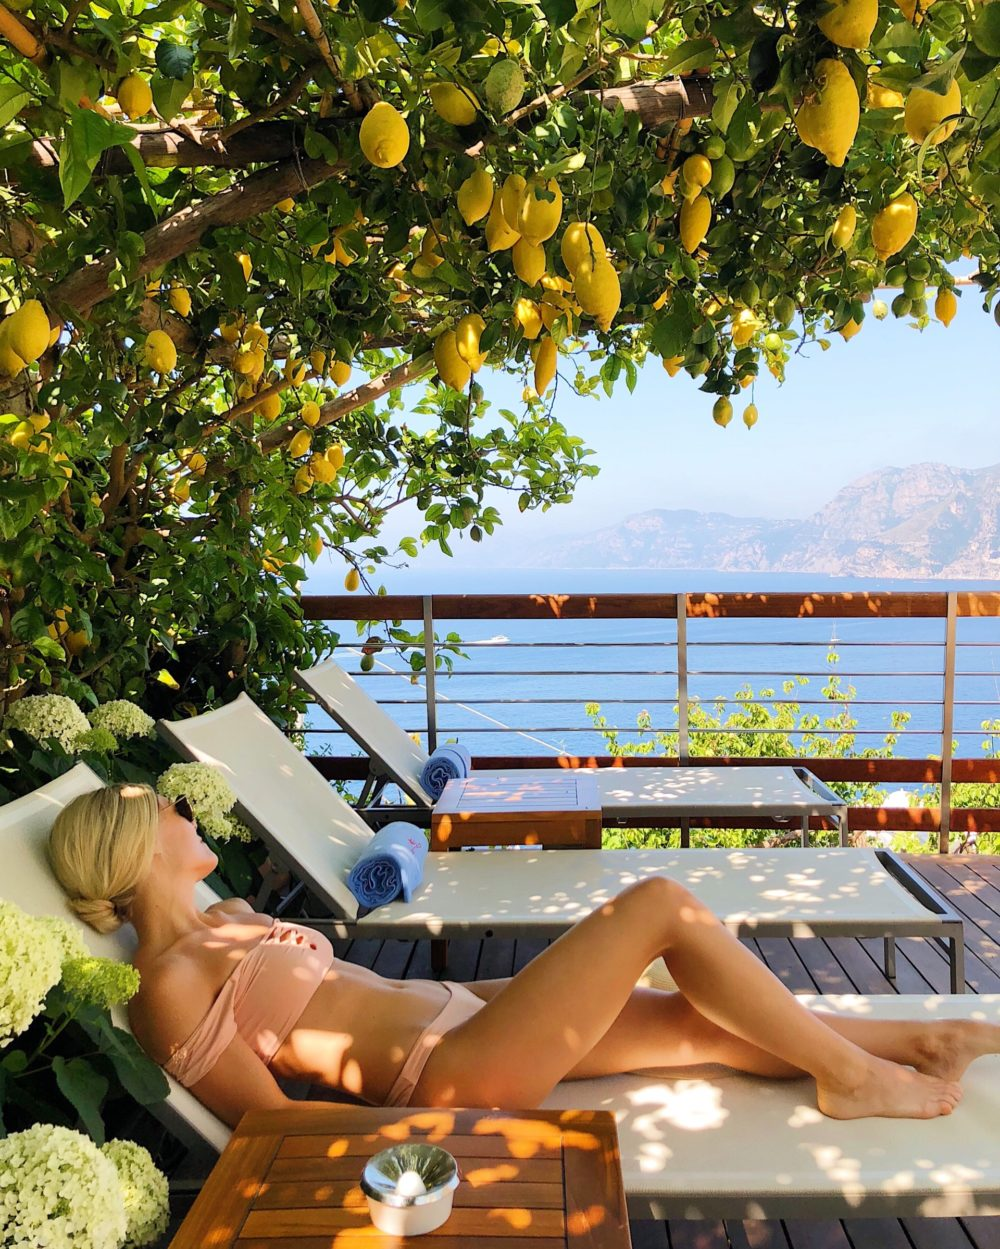 LOUNGING UNDER THE LEMON TREE AT CASA ANGELINA IN PRAIANO, ITALY